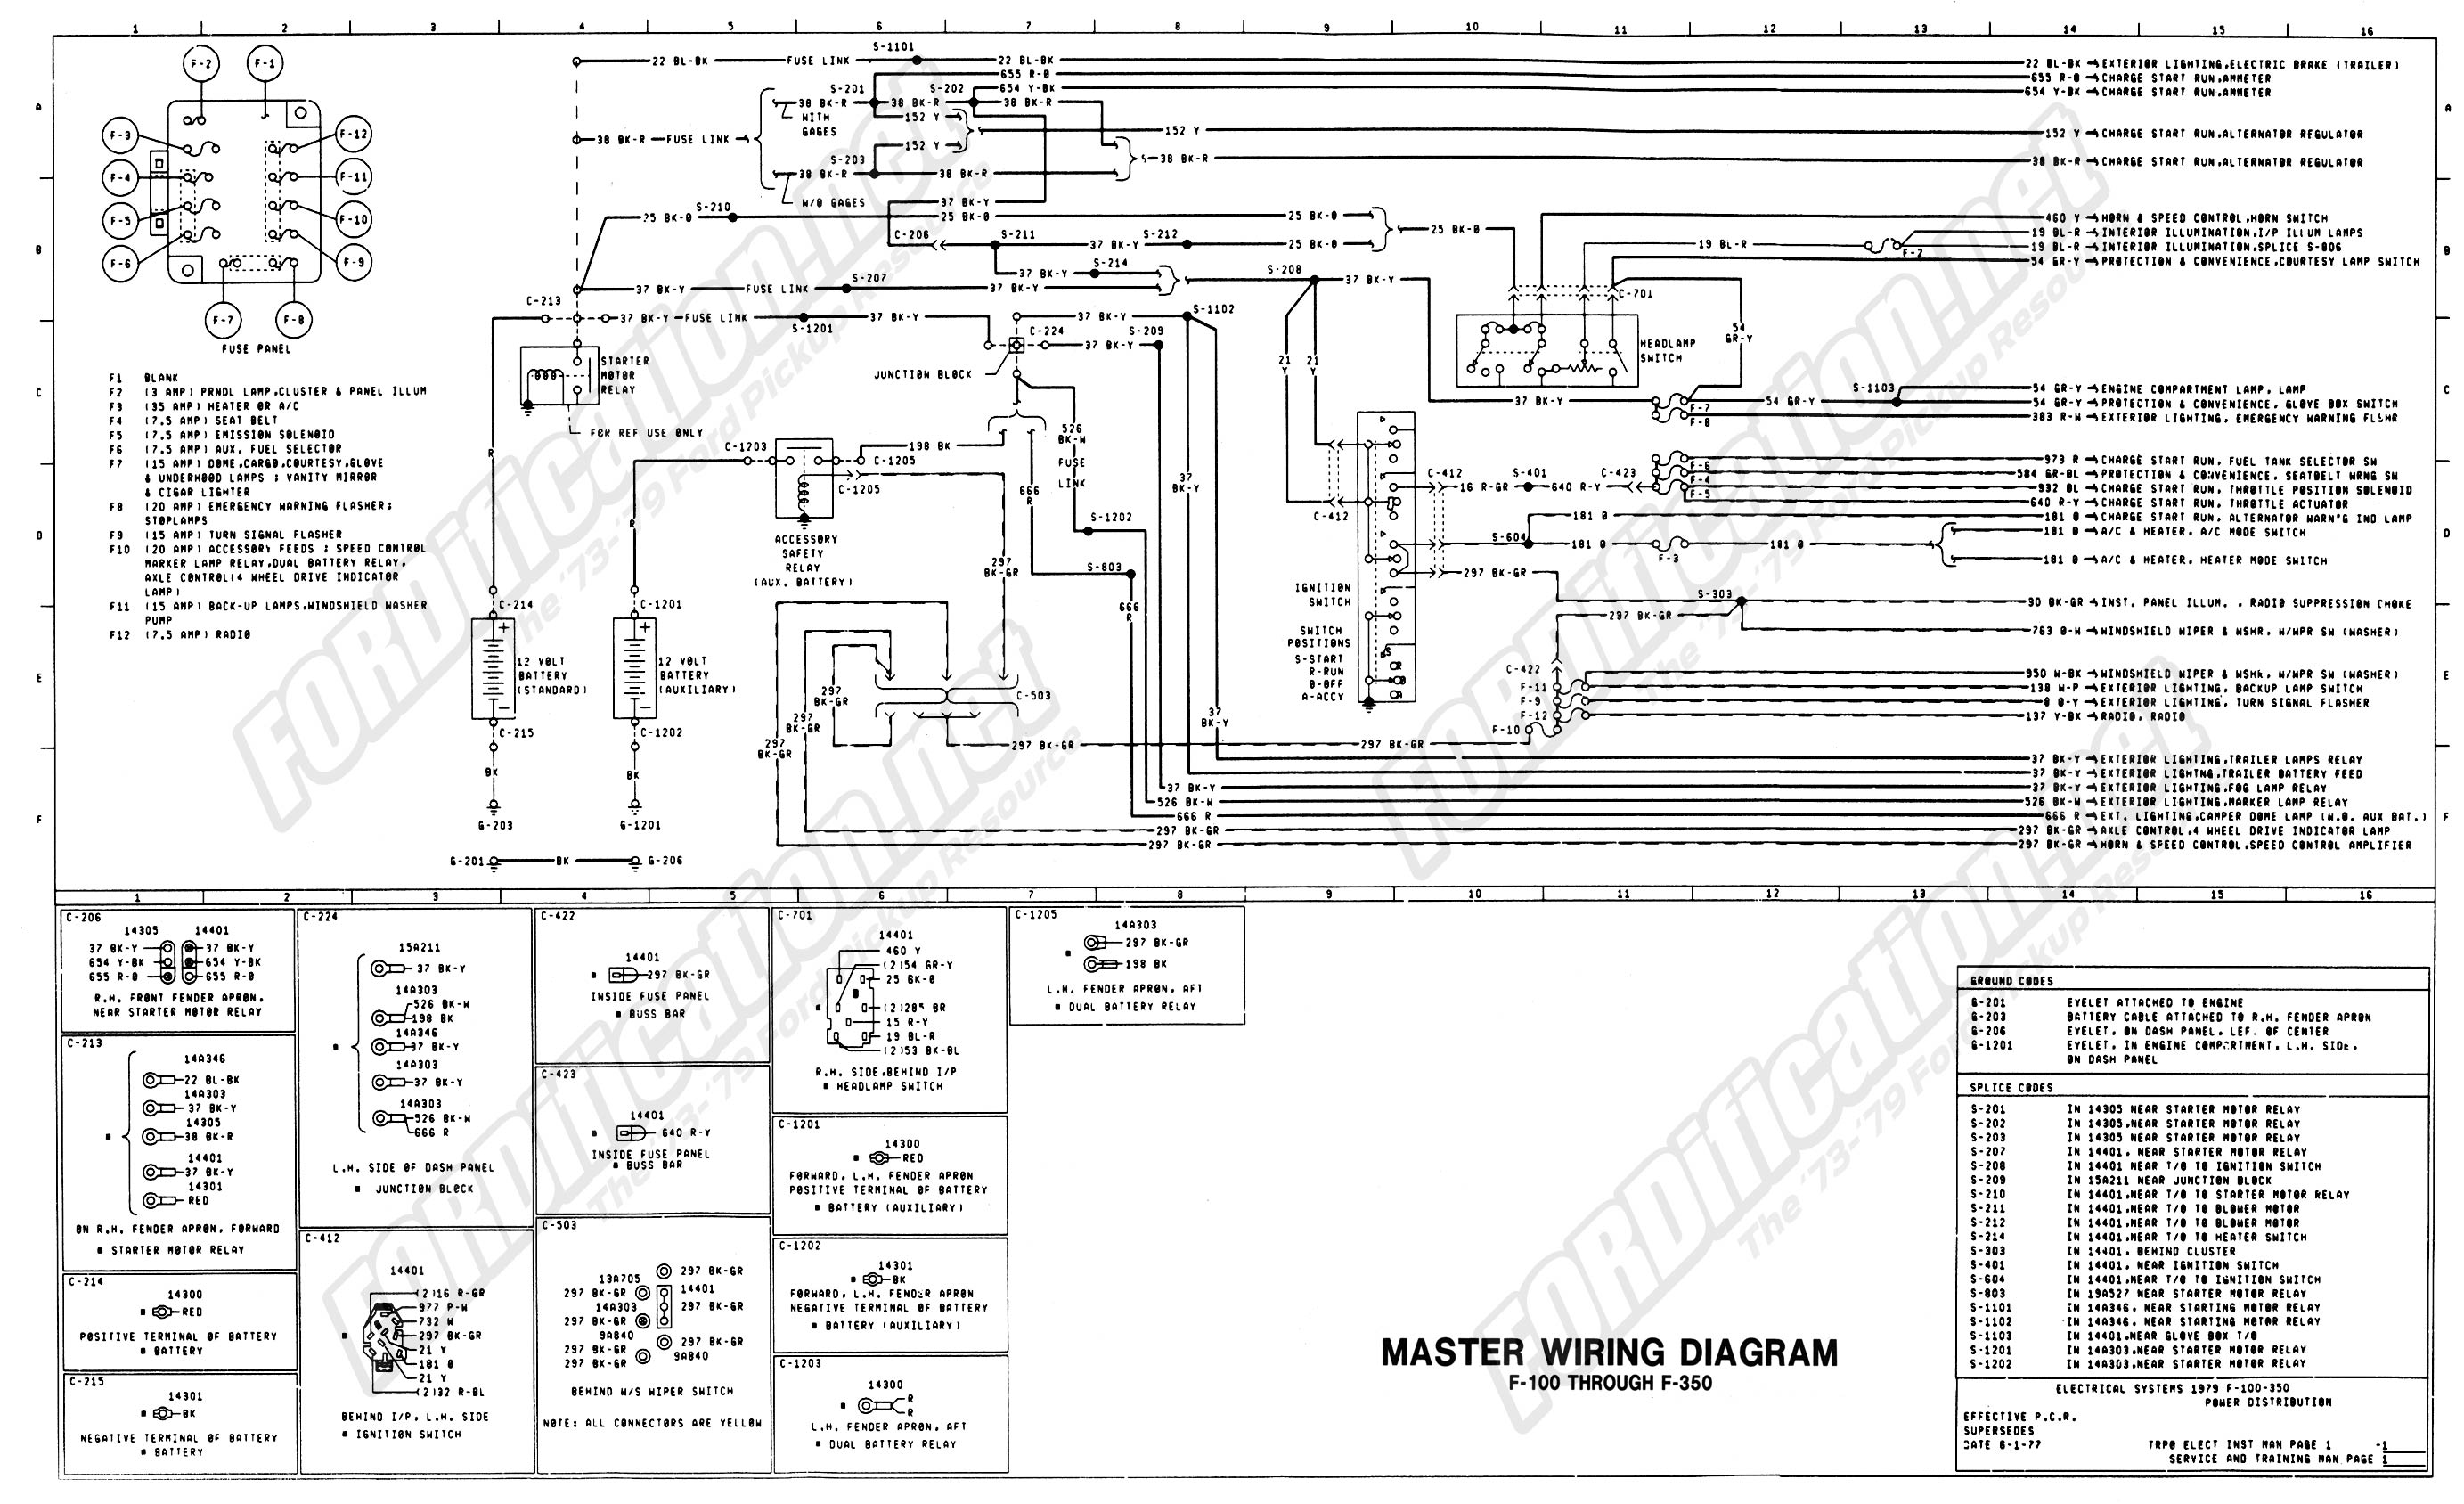 wiring_79master_1of9 1973 1979 ford truck wiring diagrams & schematics fordification net  at suagrazia.org